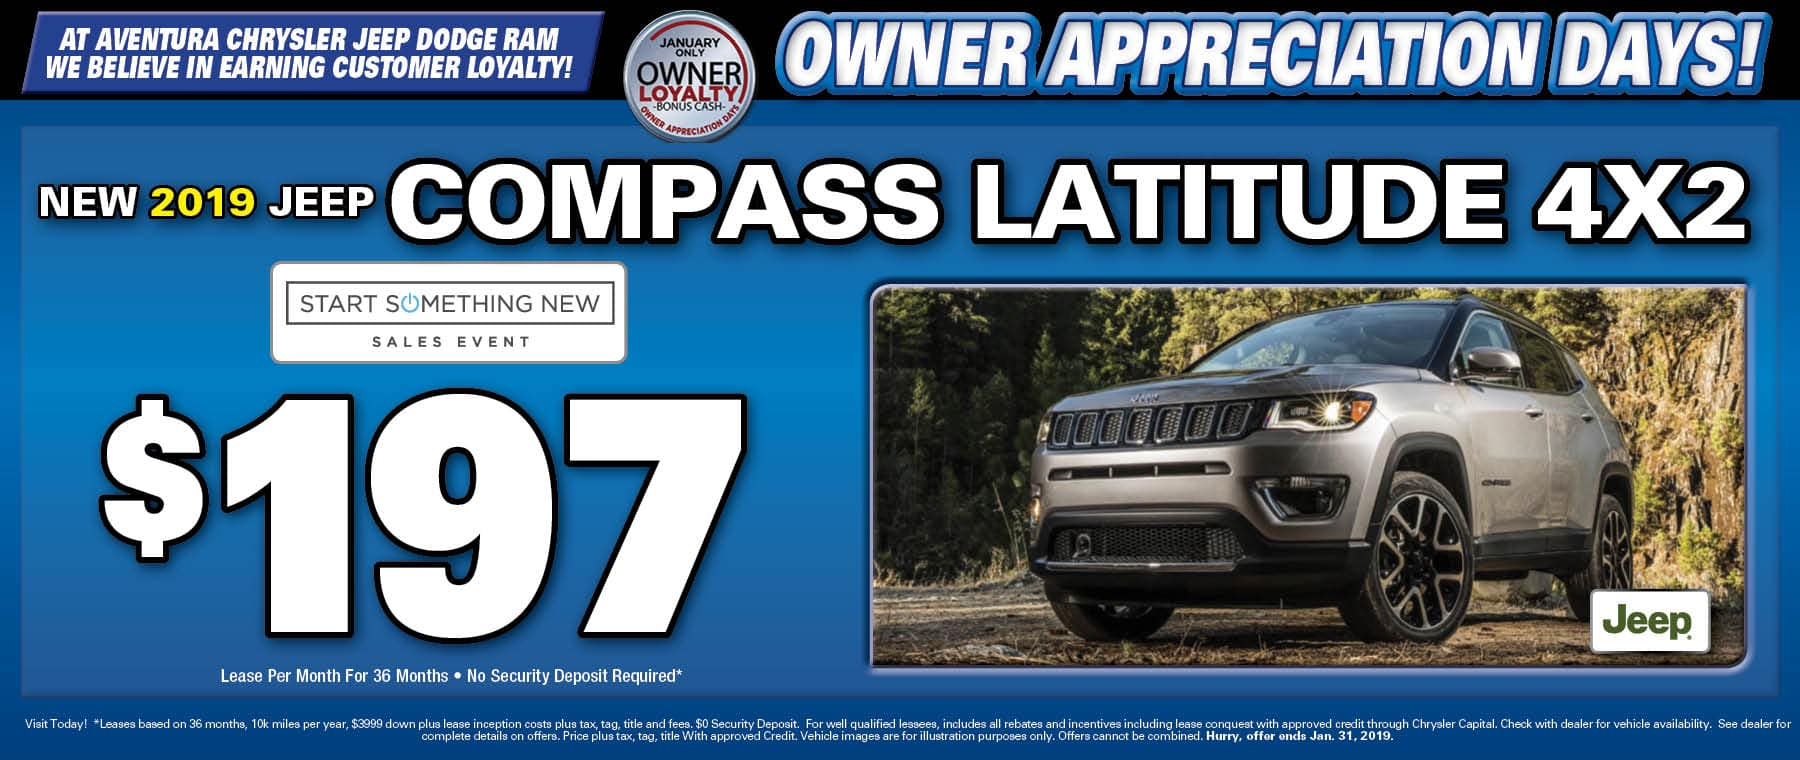 2019 Jeep Compass Latitude! - Aventura Chrysler Jeep Dodge RAM!